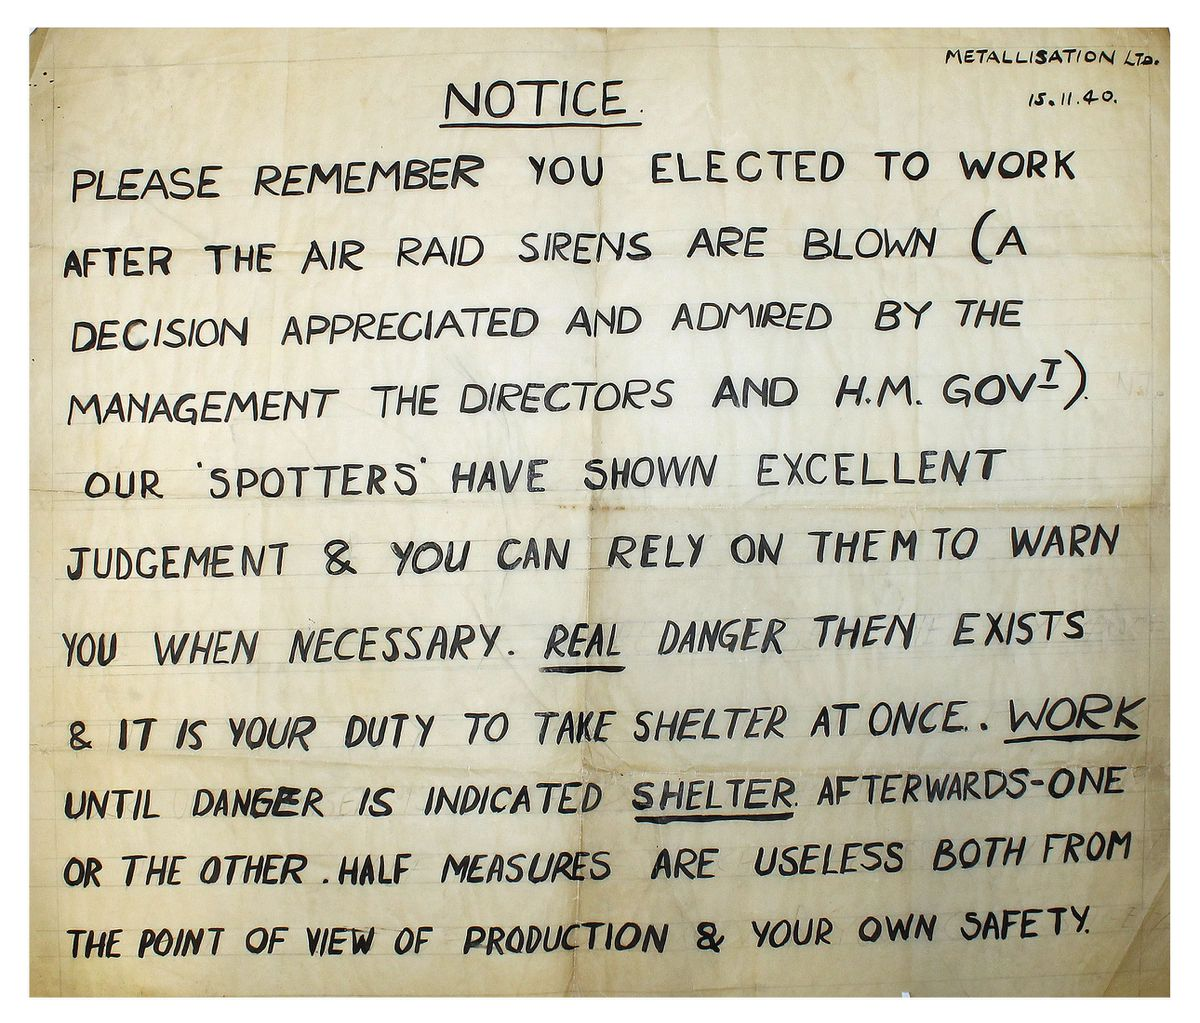 An old notice at Metallisation which has survived since 1940